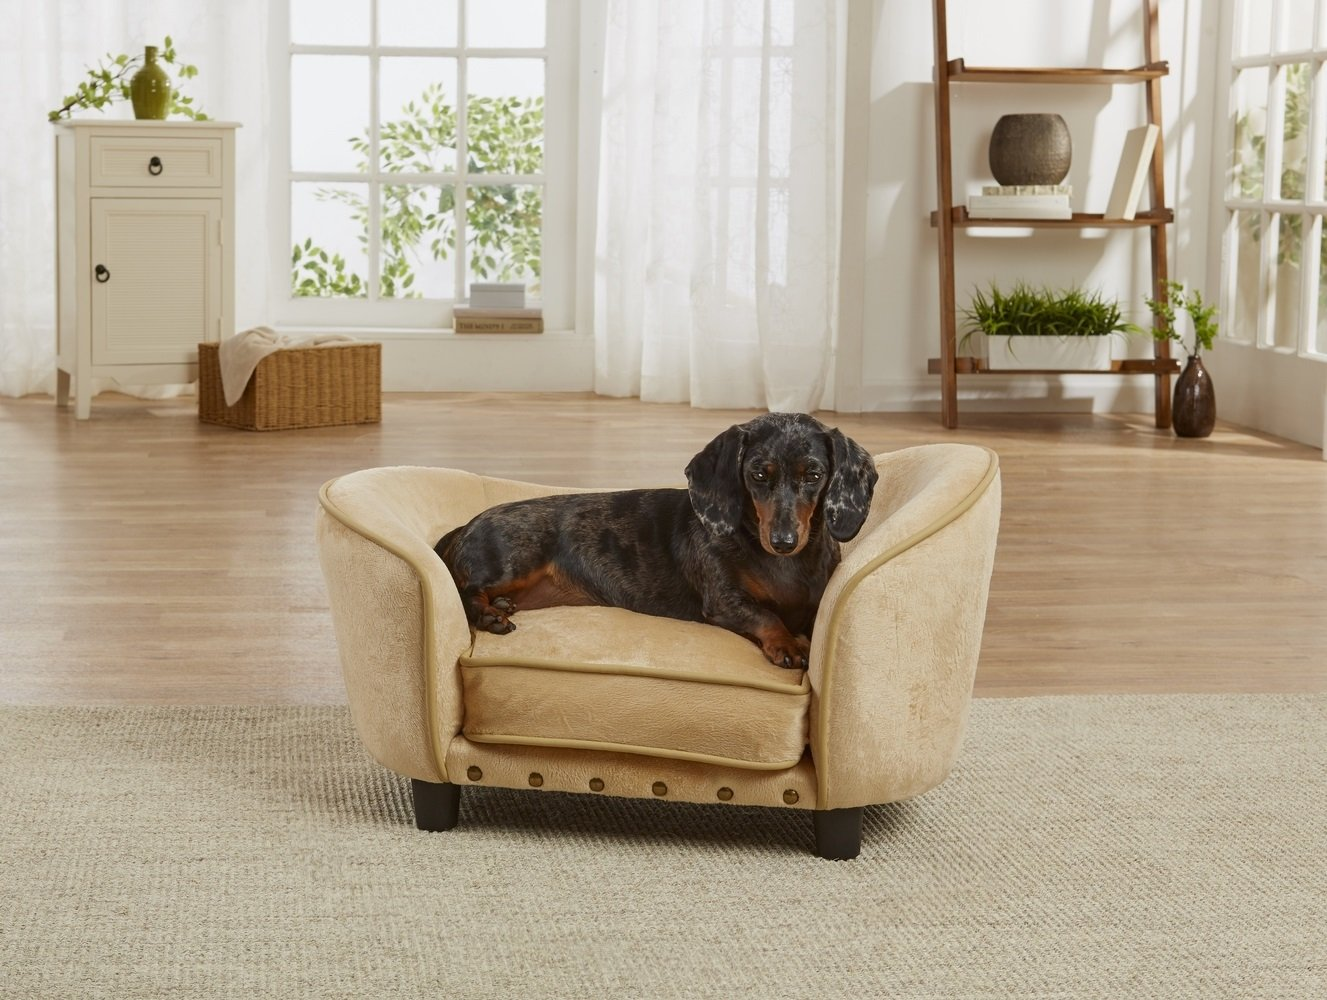 Enchanted Home Pet Ultra Plush Snuggle Bed in Caramel by Enchanted Home Pet